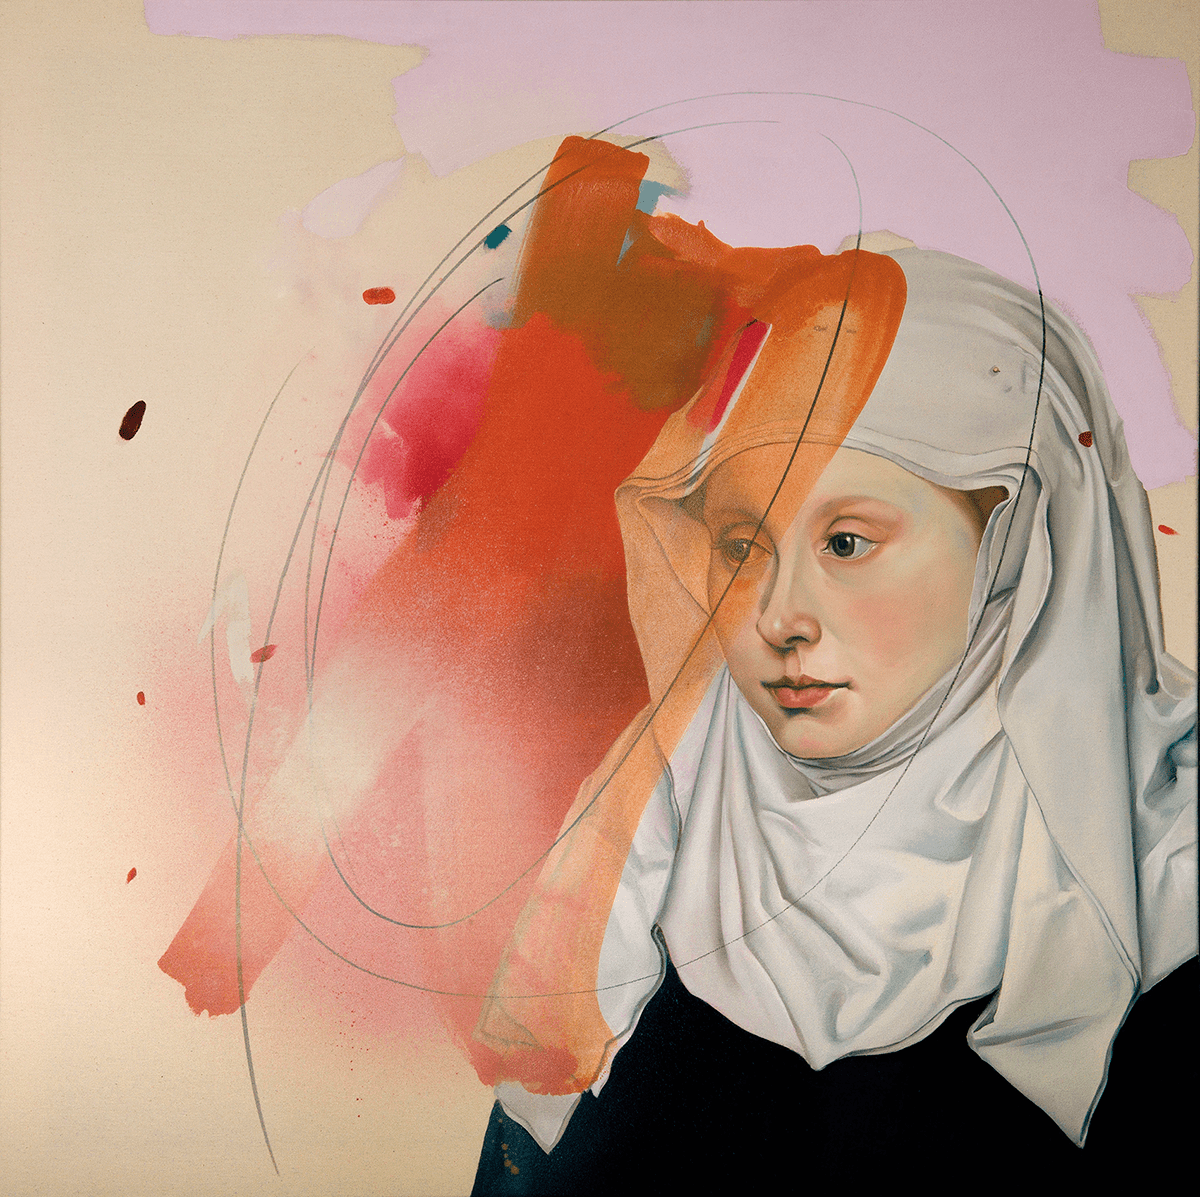 Anja Wülfing Portrait after Robert Campin, 2020 Oil, Acrylic, Marker on Canvas 100 x 100 cm (39,4 x 39,4 in) © The Artist